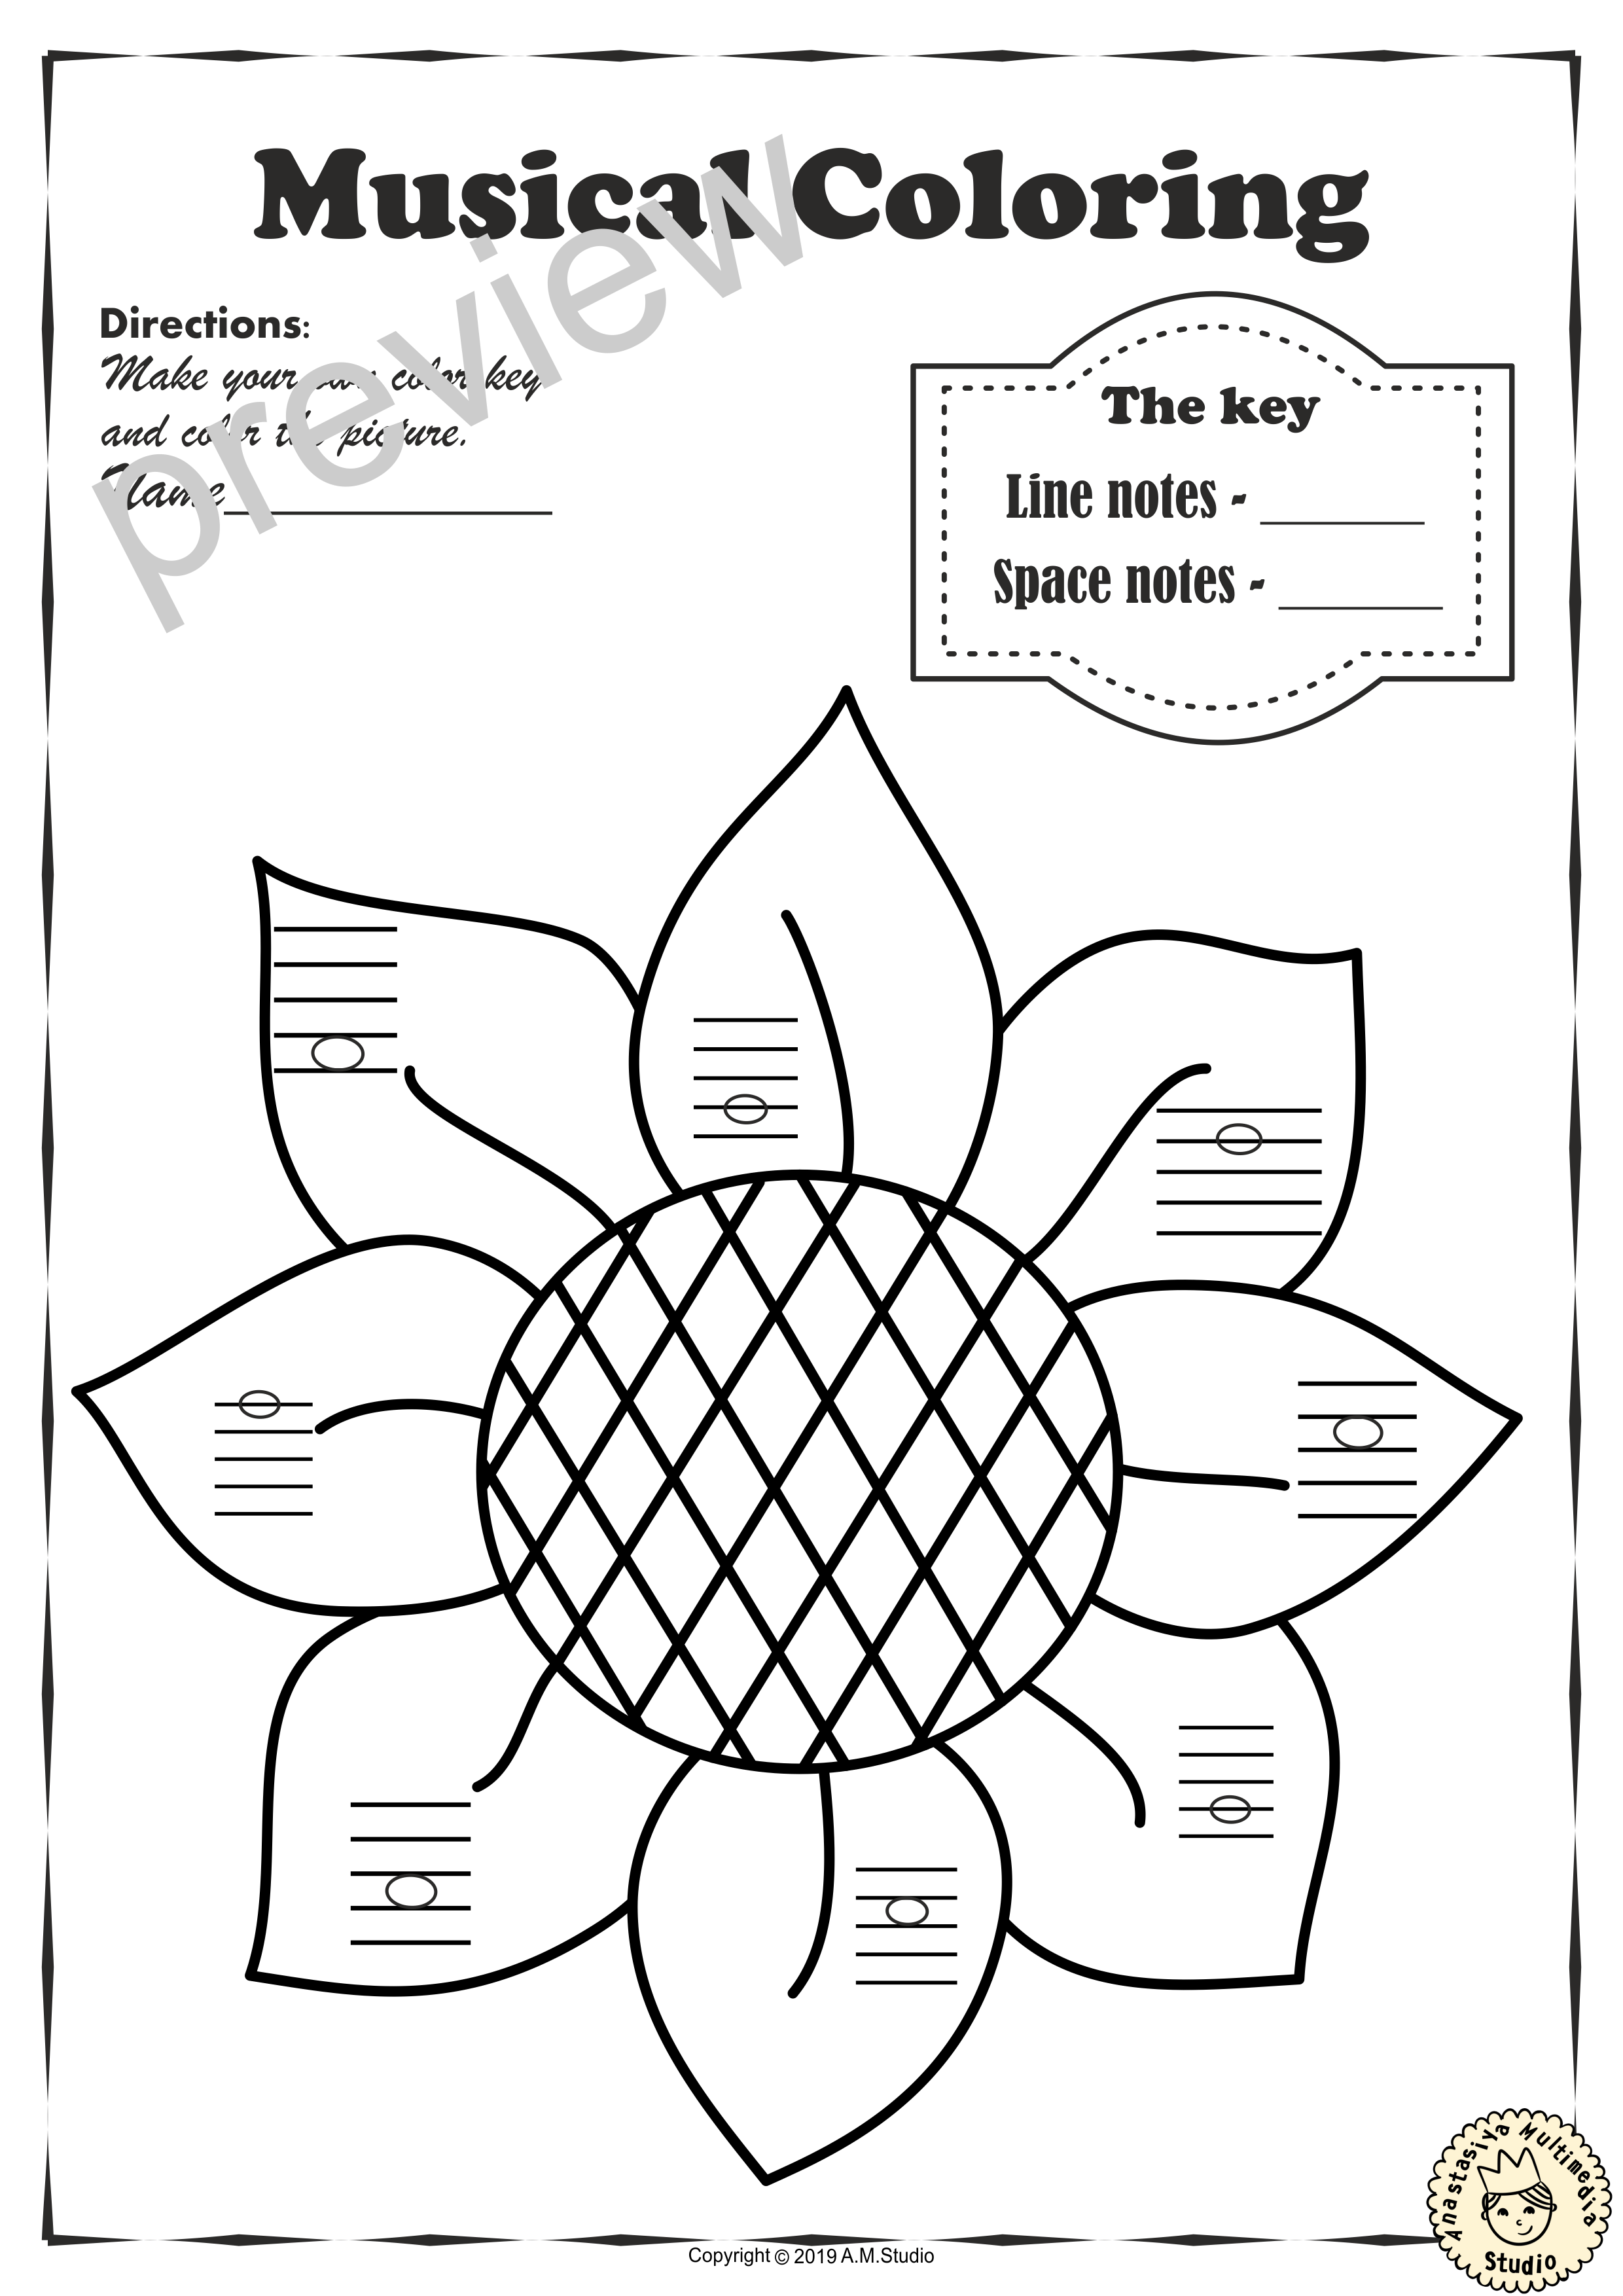 Musical Coloring Pages For Fall Lines And Spaces With Answers Music Lesson Plans Music Class Activities Coloring Pages